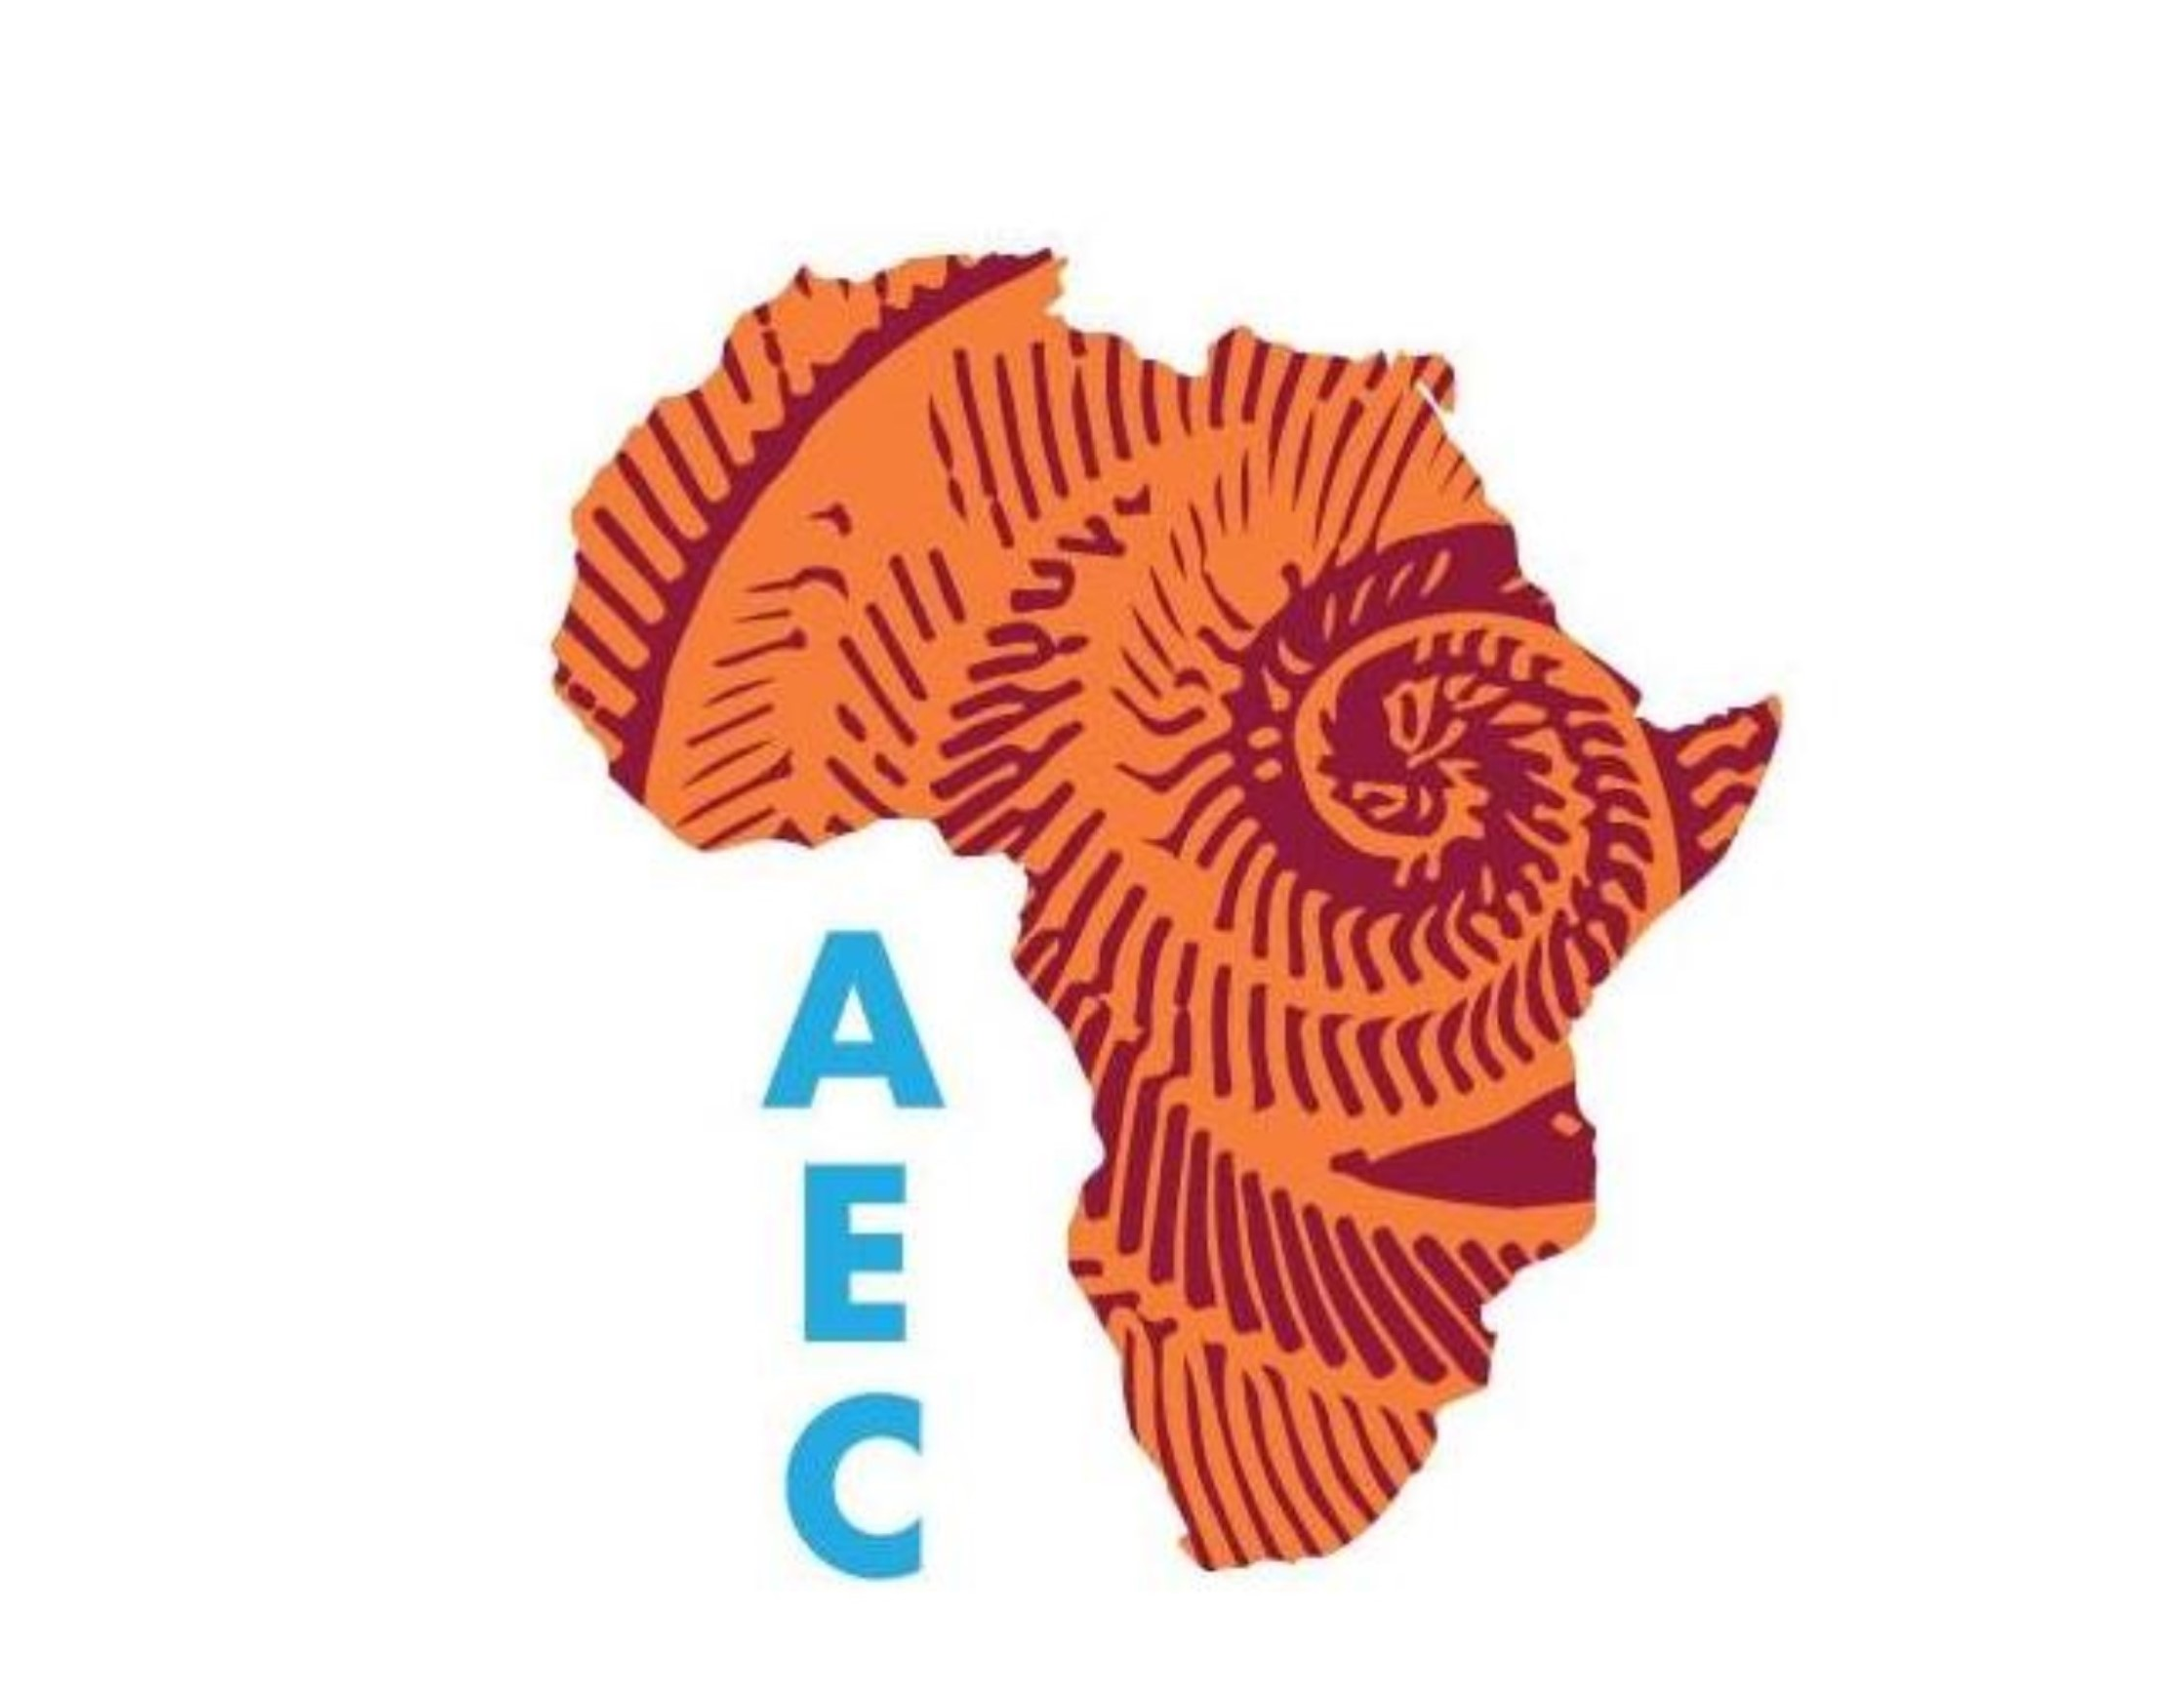 African Entrepreneur Collective